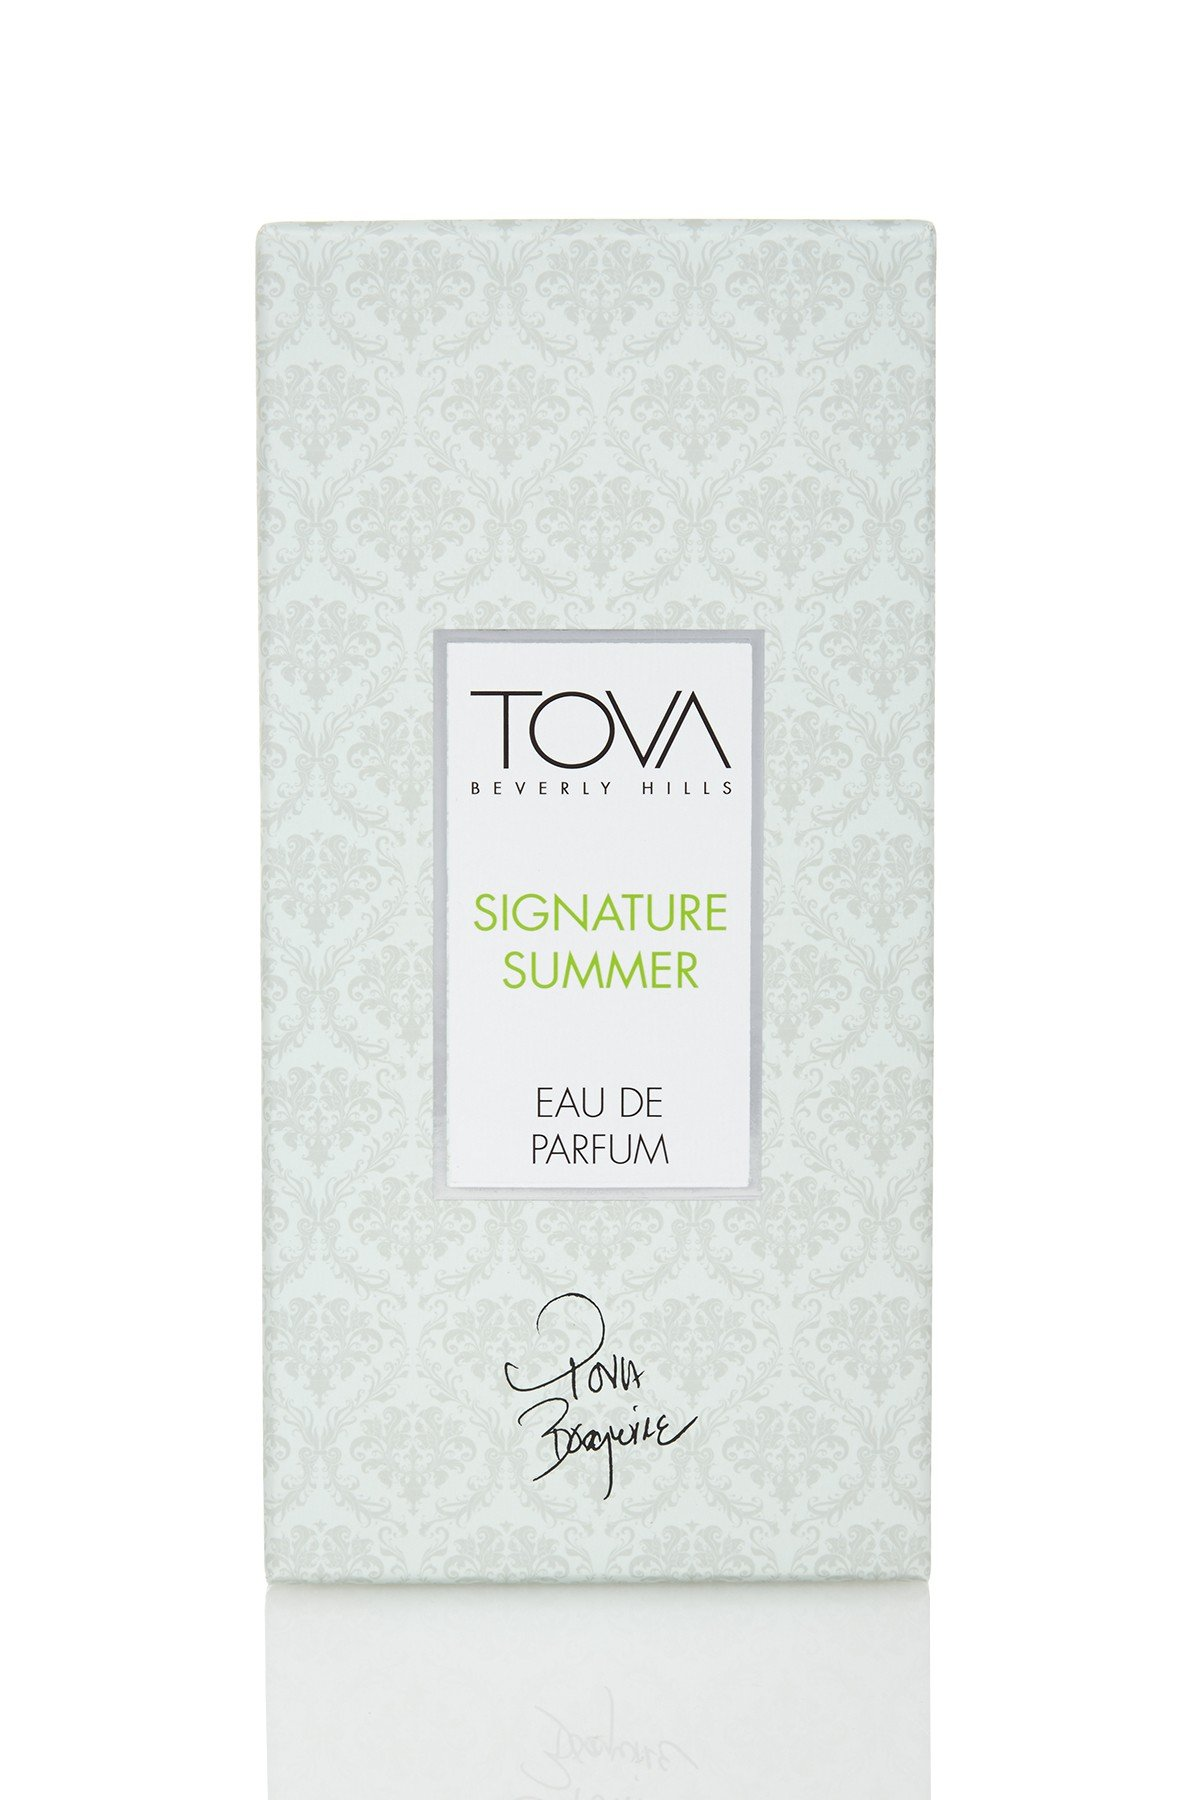 Tova Beverly Hills Signature Summer 3.4 Oz Eau De Parfum Spray